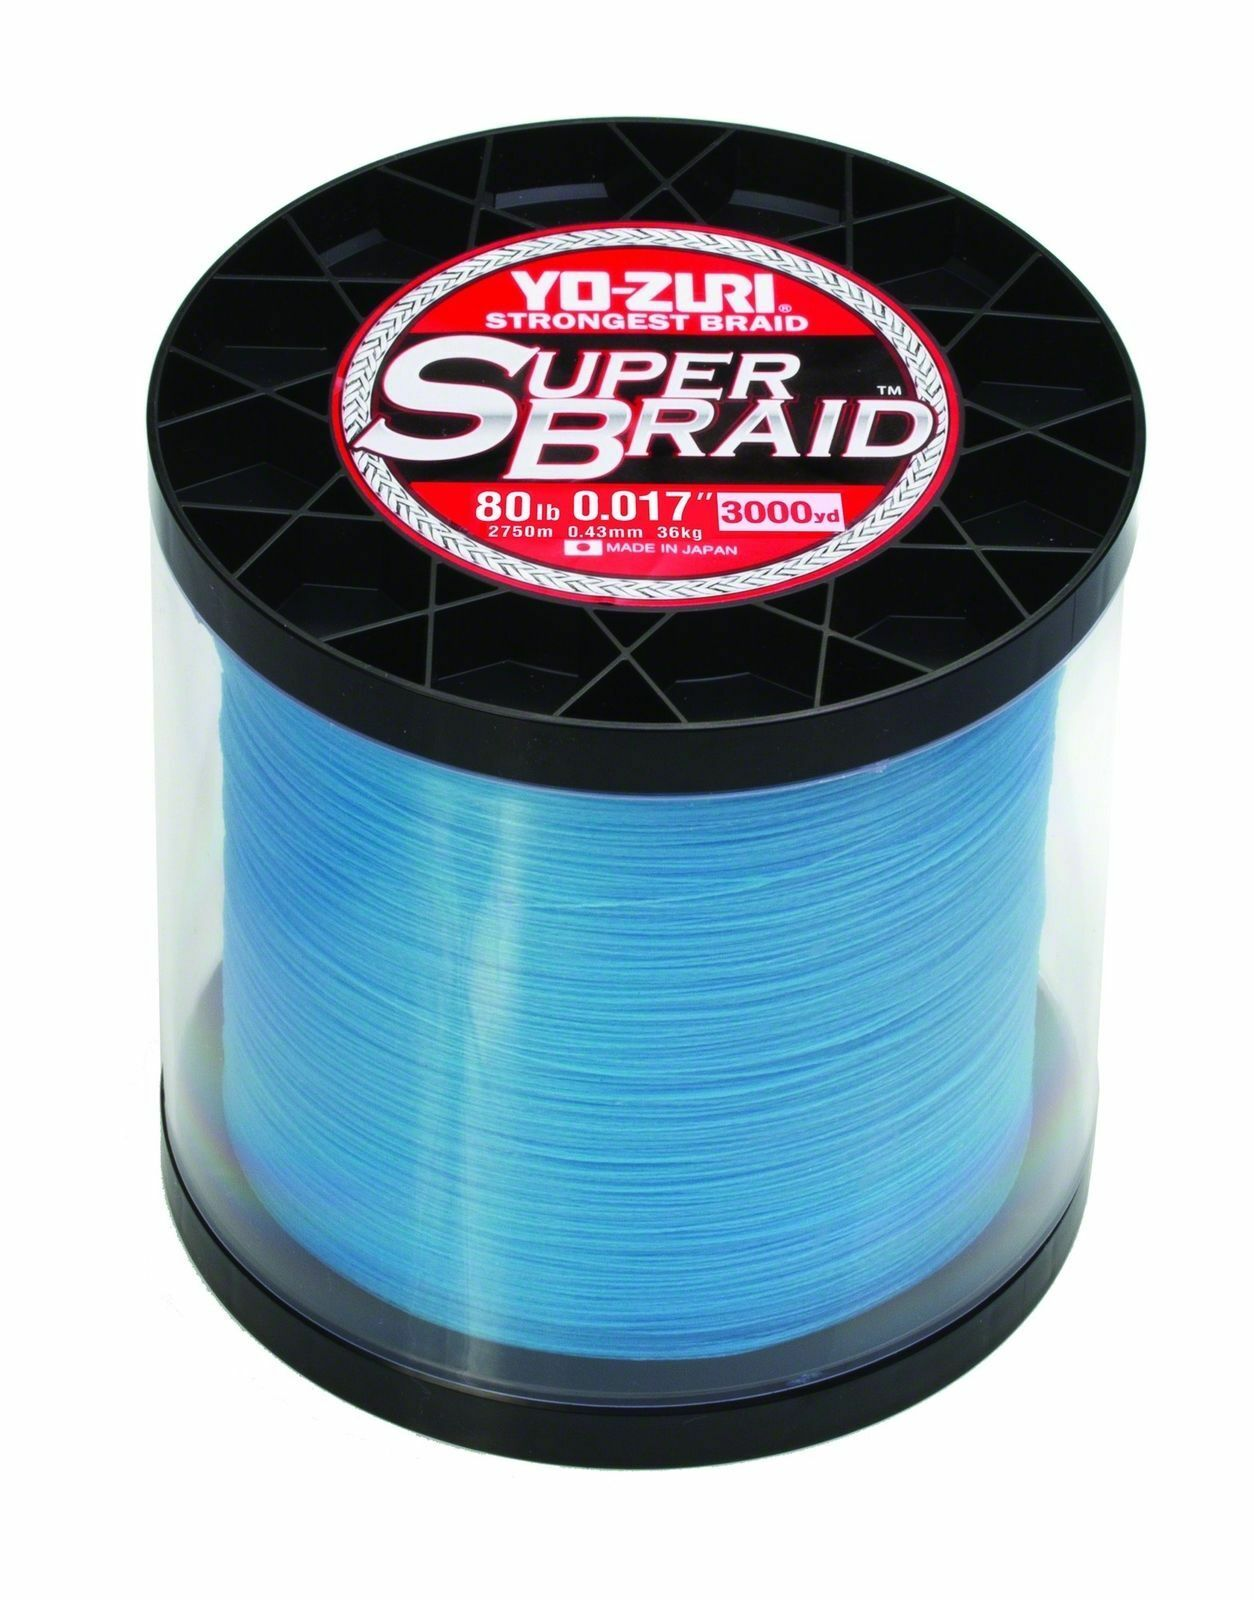 New Yo-Zuri YZ SB 80LB BL 3000YD SuperBraid Line, 80lb Test, 3000yd